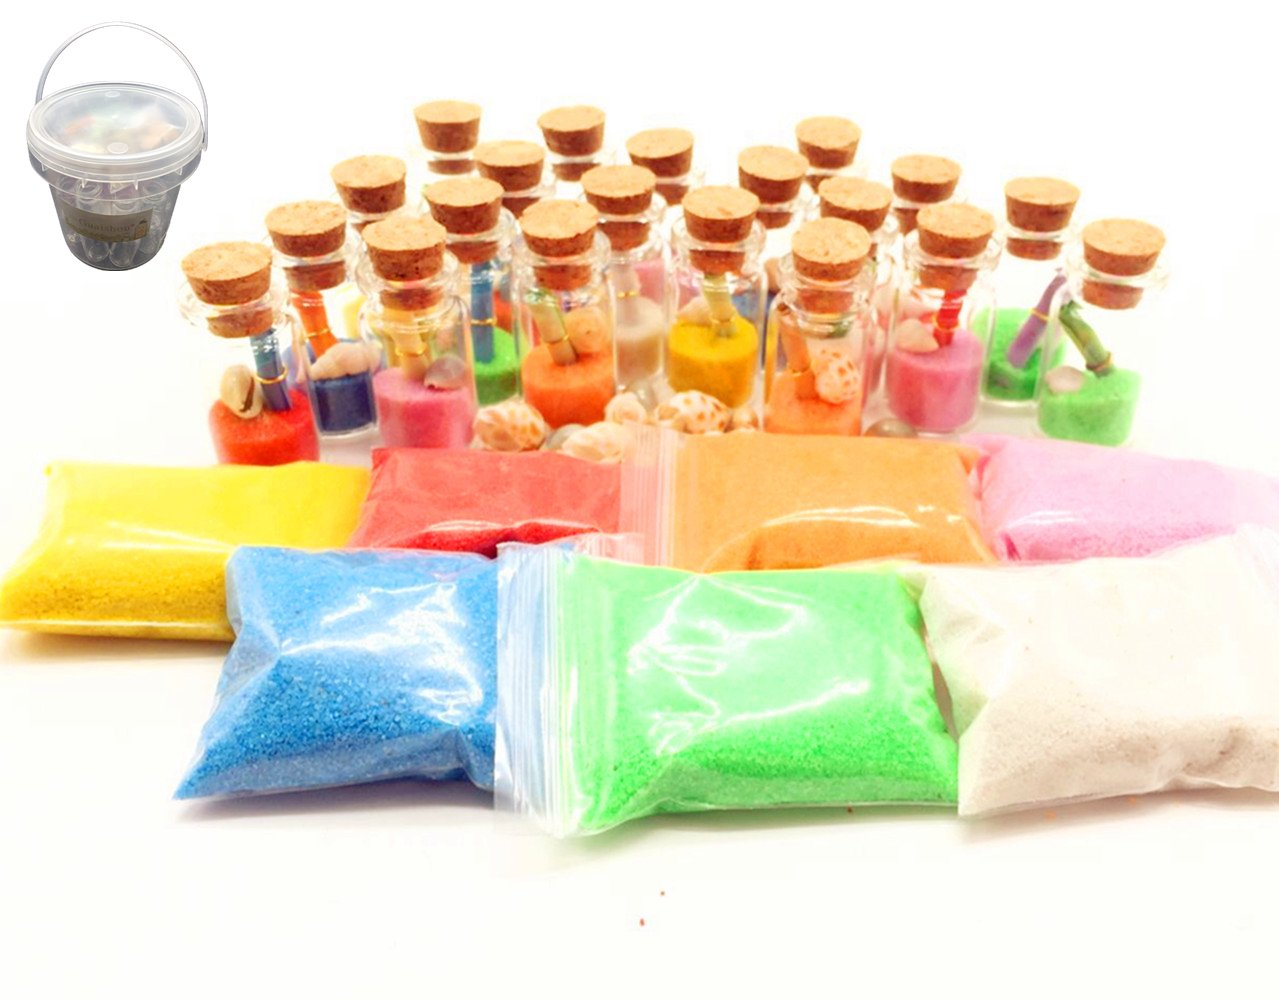 Guaishou DIY Arts and Crafts Kit for Kids Wishing Bottles Art Glass Bottles with Cork Colorful Rainbow Sand Sea Shells Mixed Beach Seashells